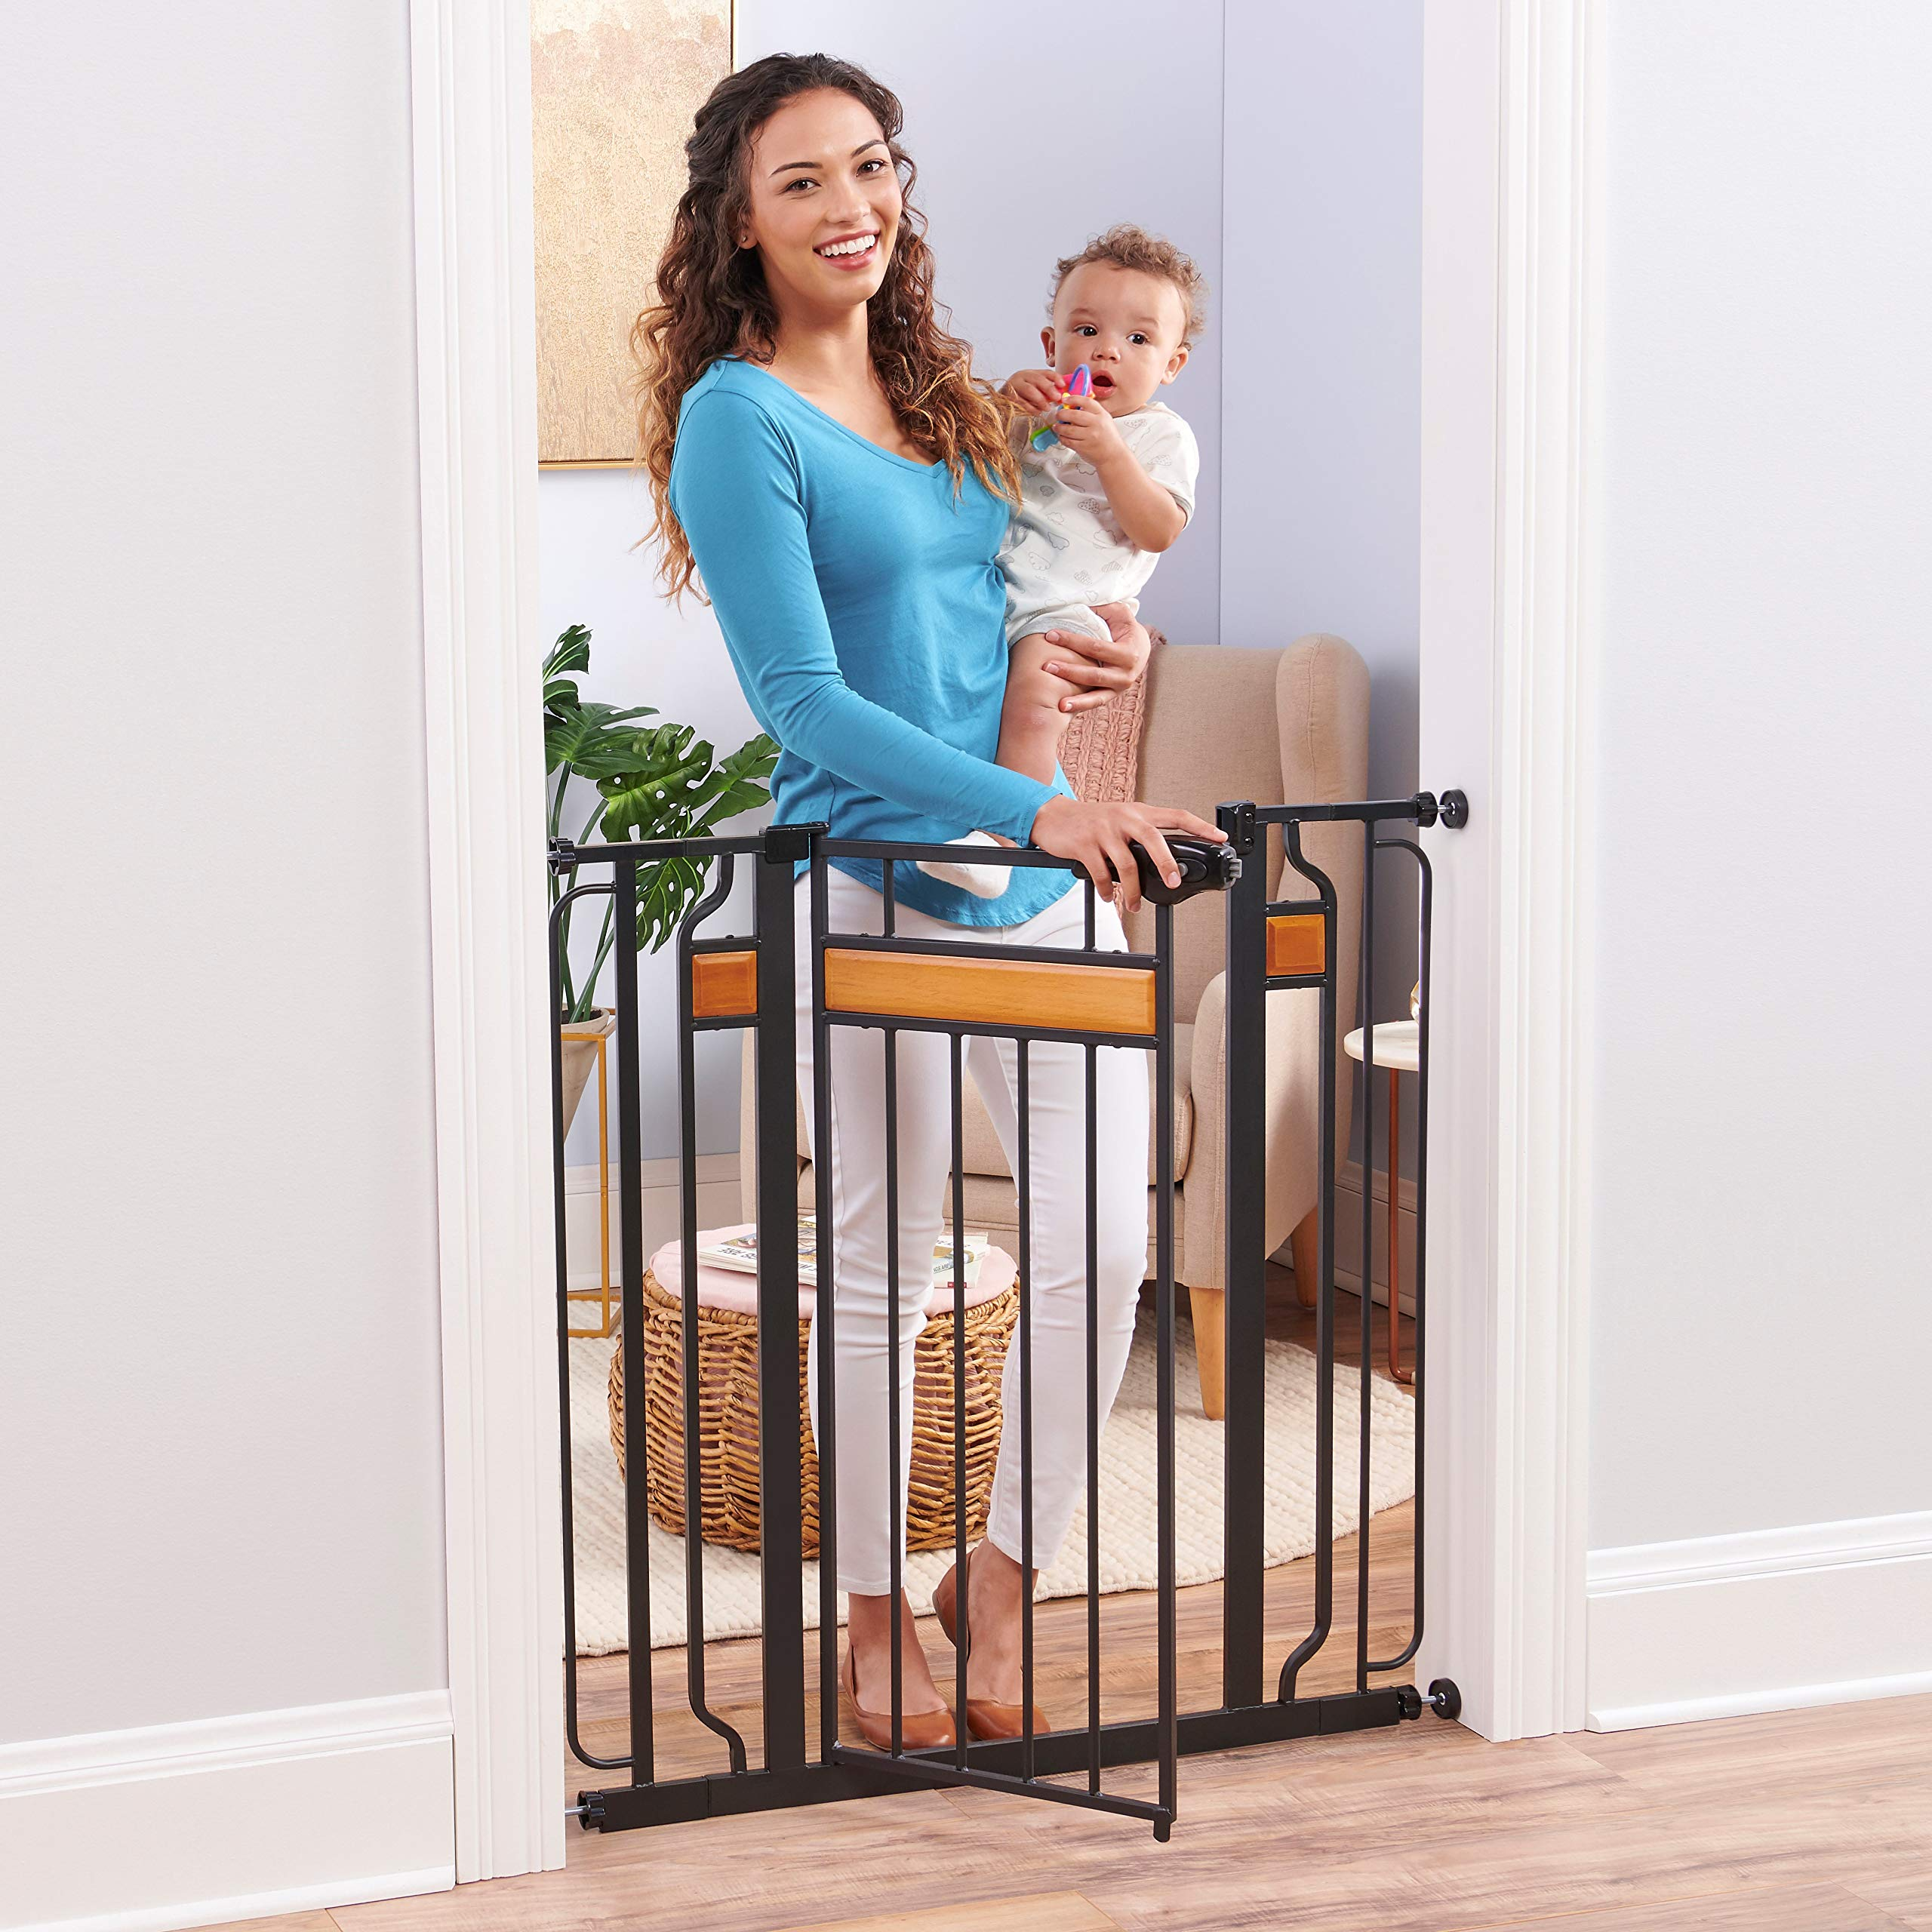 Regalo Easy Step Extra Tall Walk Thru Baby Gate Includes 4-Inch Extension Kit 4 Pack of Pressure Mount Kit and 4 Pack Wall Cups and Mounting Kit